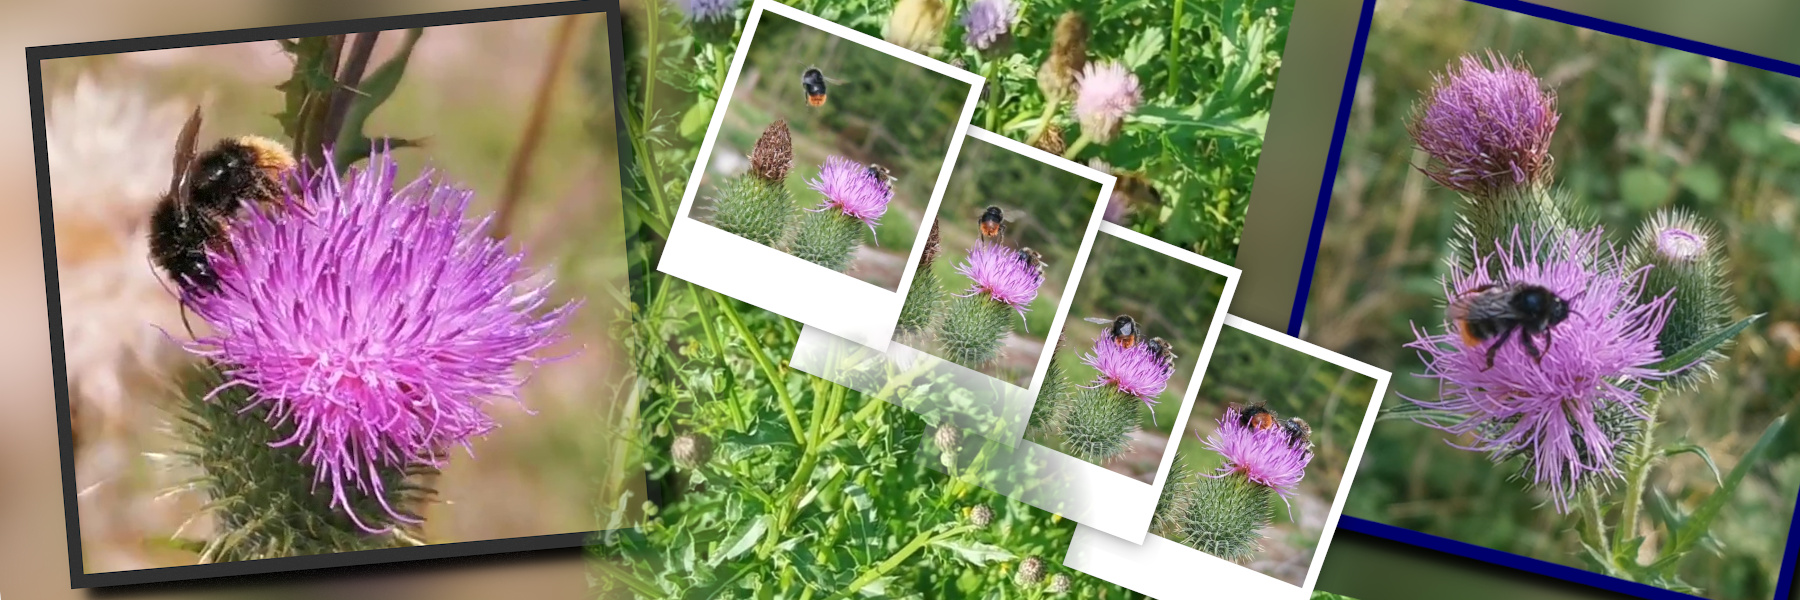 bees_2021_1800x600